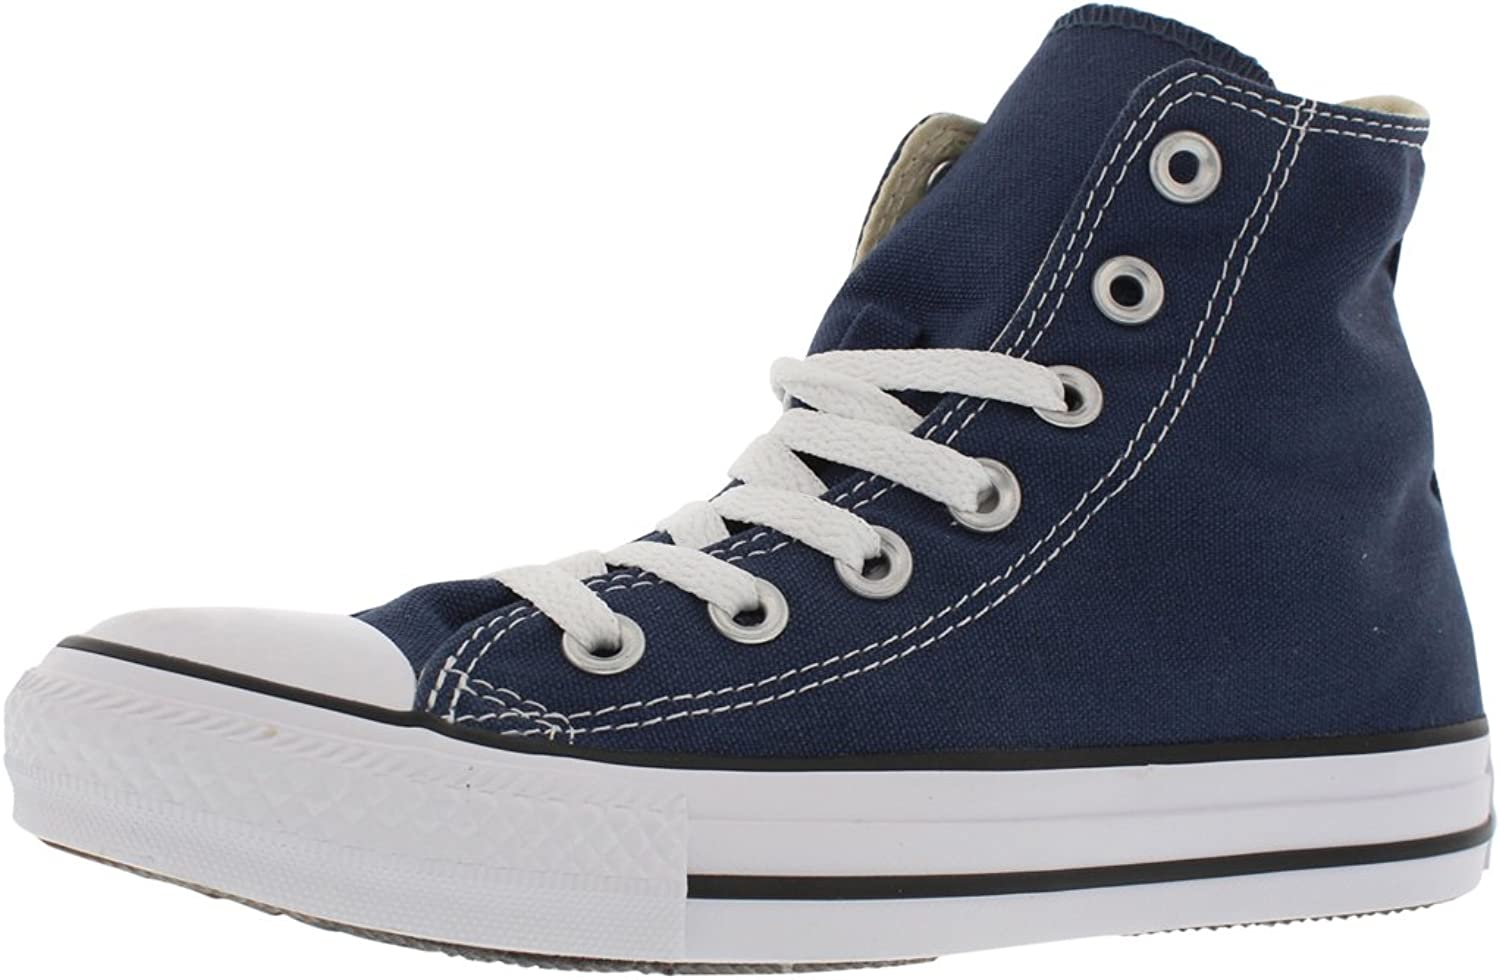 Converse All Star Chuck Taylor Basic Hi Women's Casual Sneakers Size US 5, Regular Width, color Navy